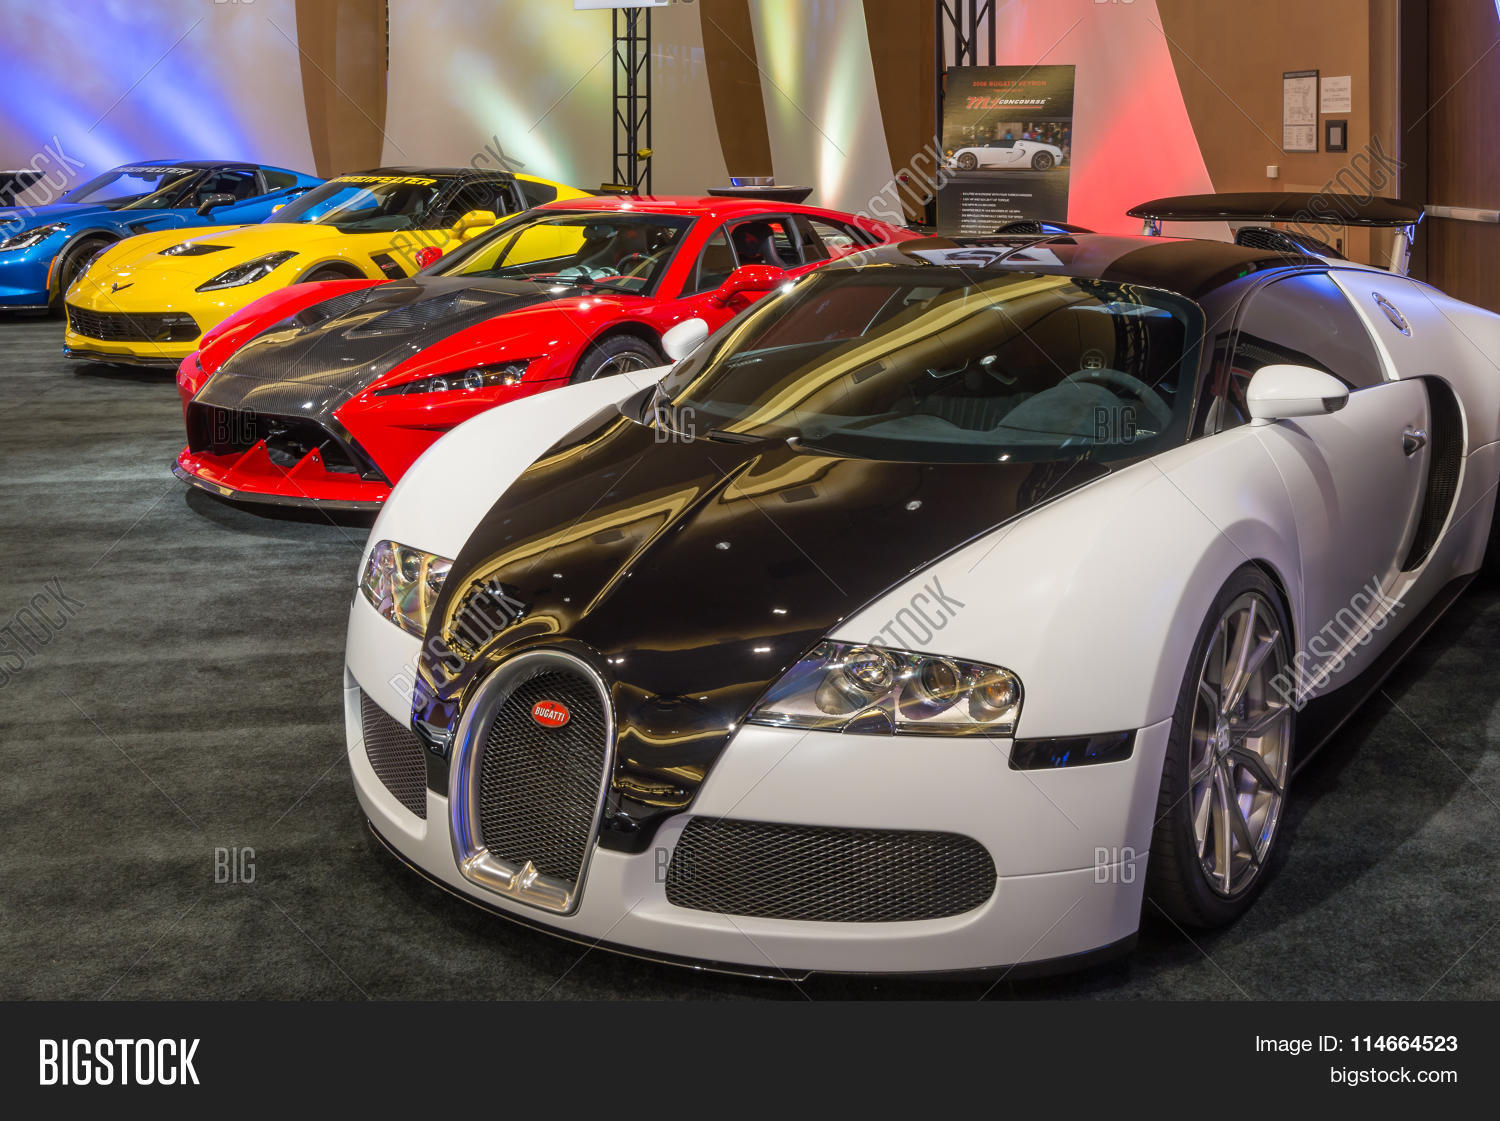 bugatti veyron falcon f7 image photo bigstock. Black Bedroom Furniture Sets. Home Design Ideas